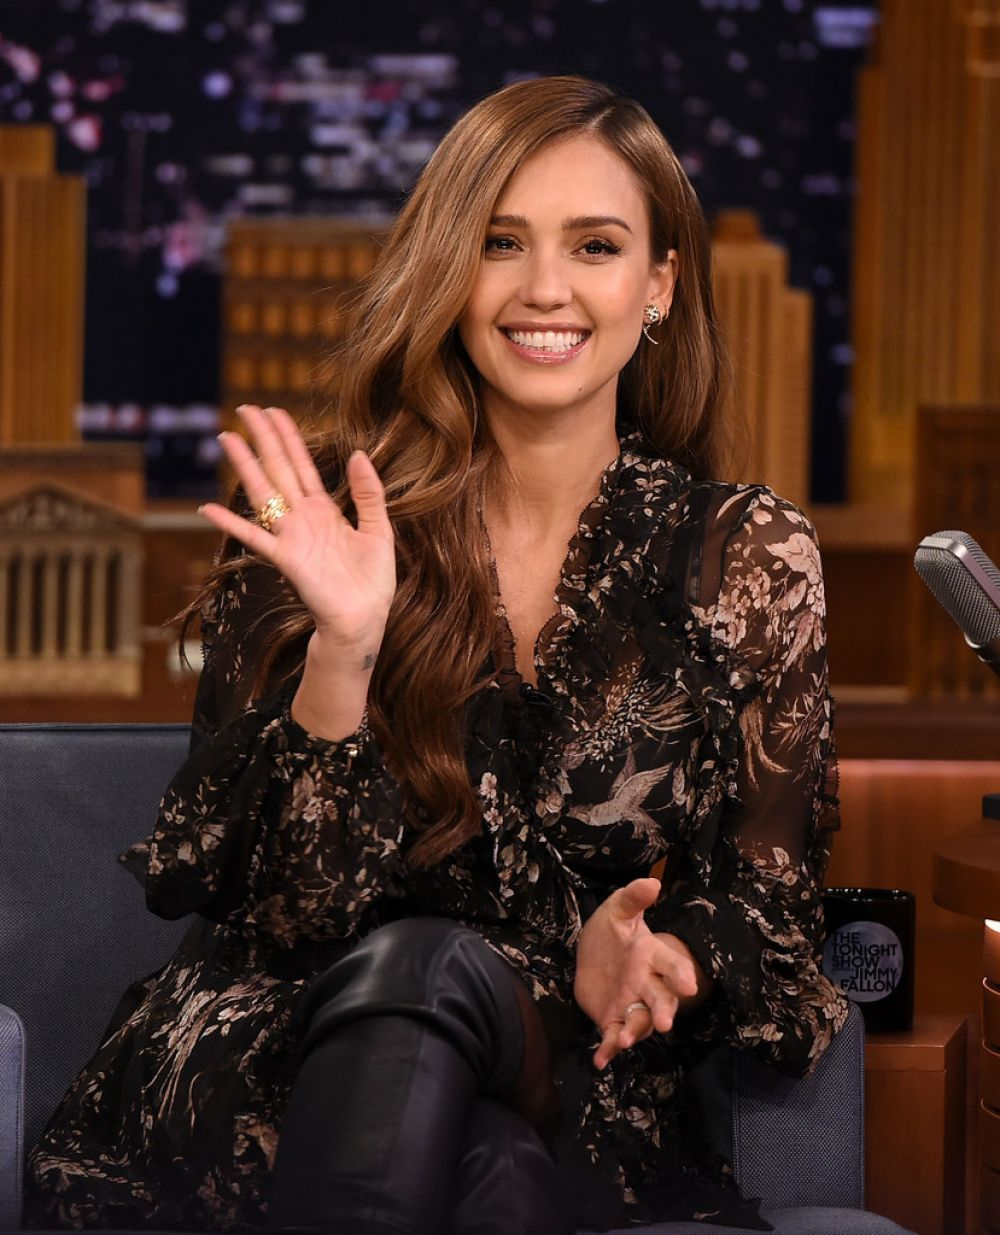 JESSICA ALBA on the Set of Tonight Show Starring Jimmy Fallon in New York 08/04/2017